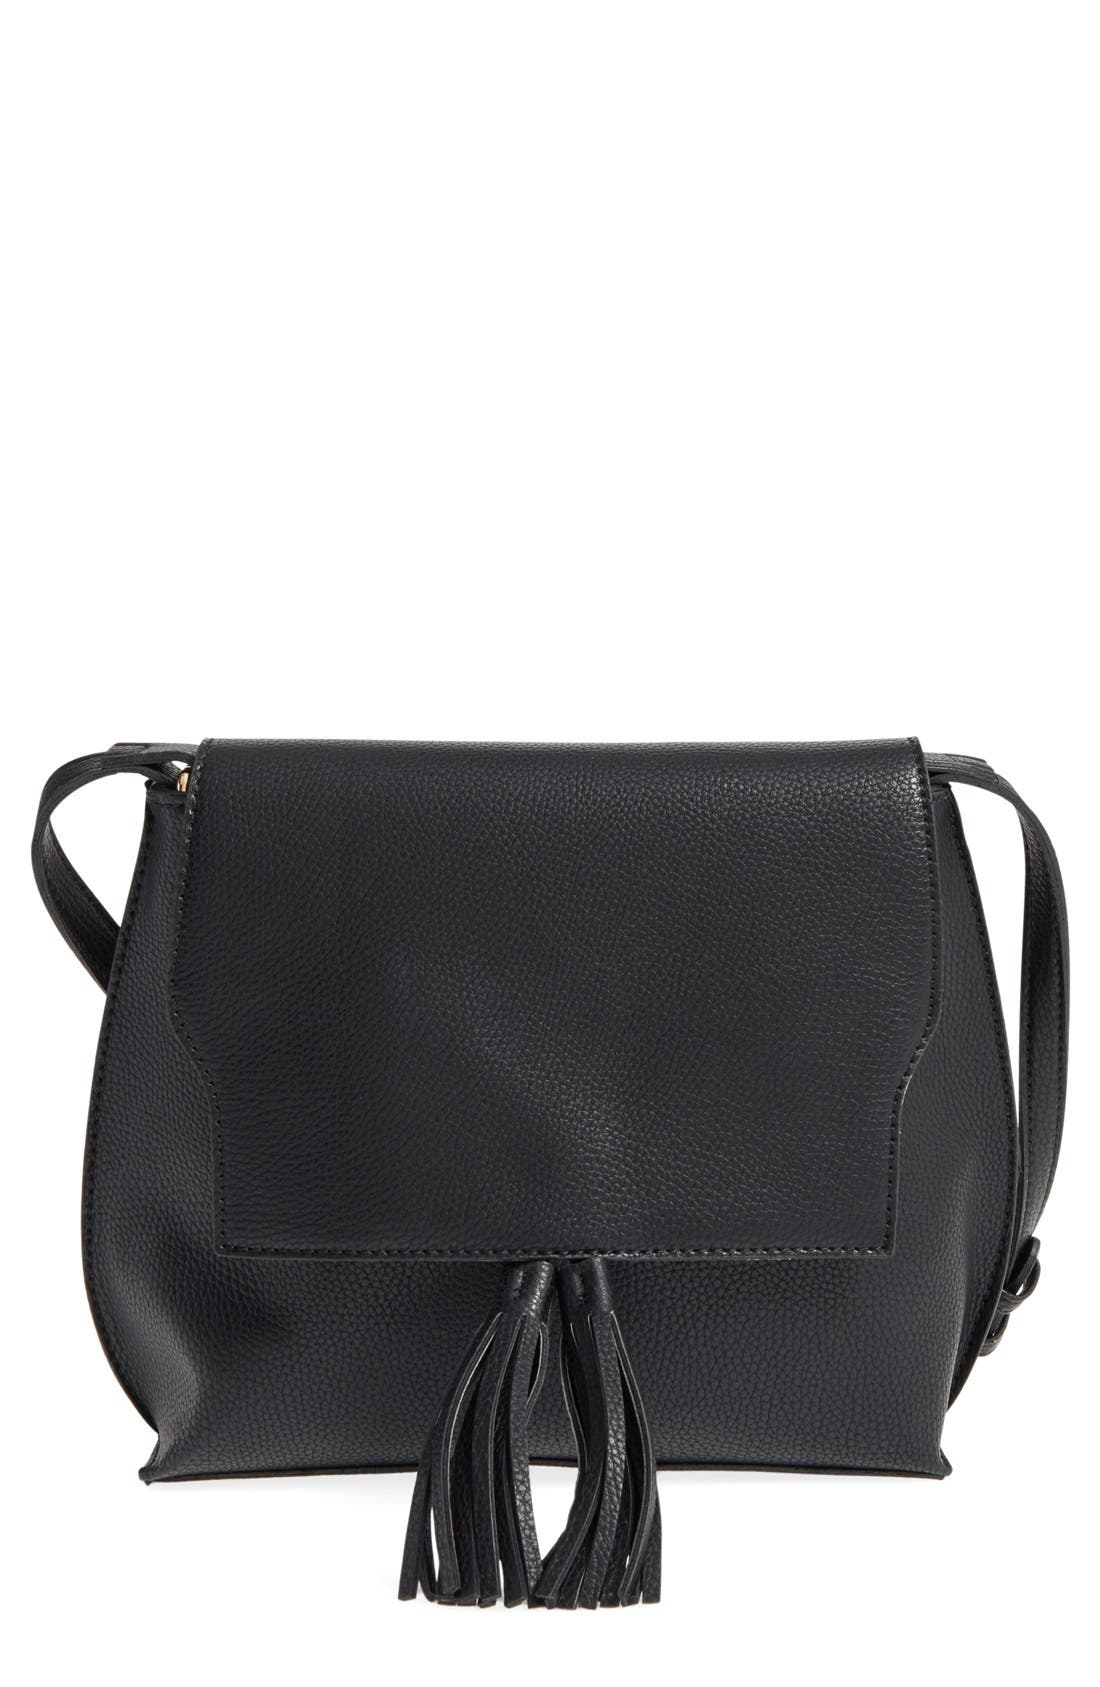 Tassel Faux Leather Crossbody Bag,                             Main thumbnail 1, color,                             001